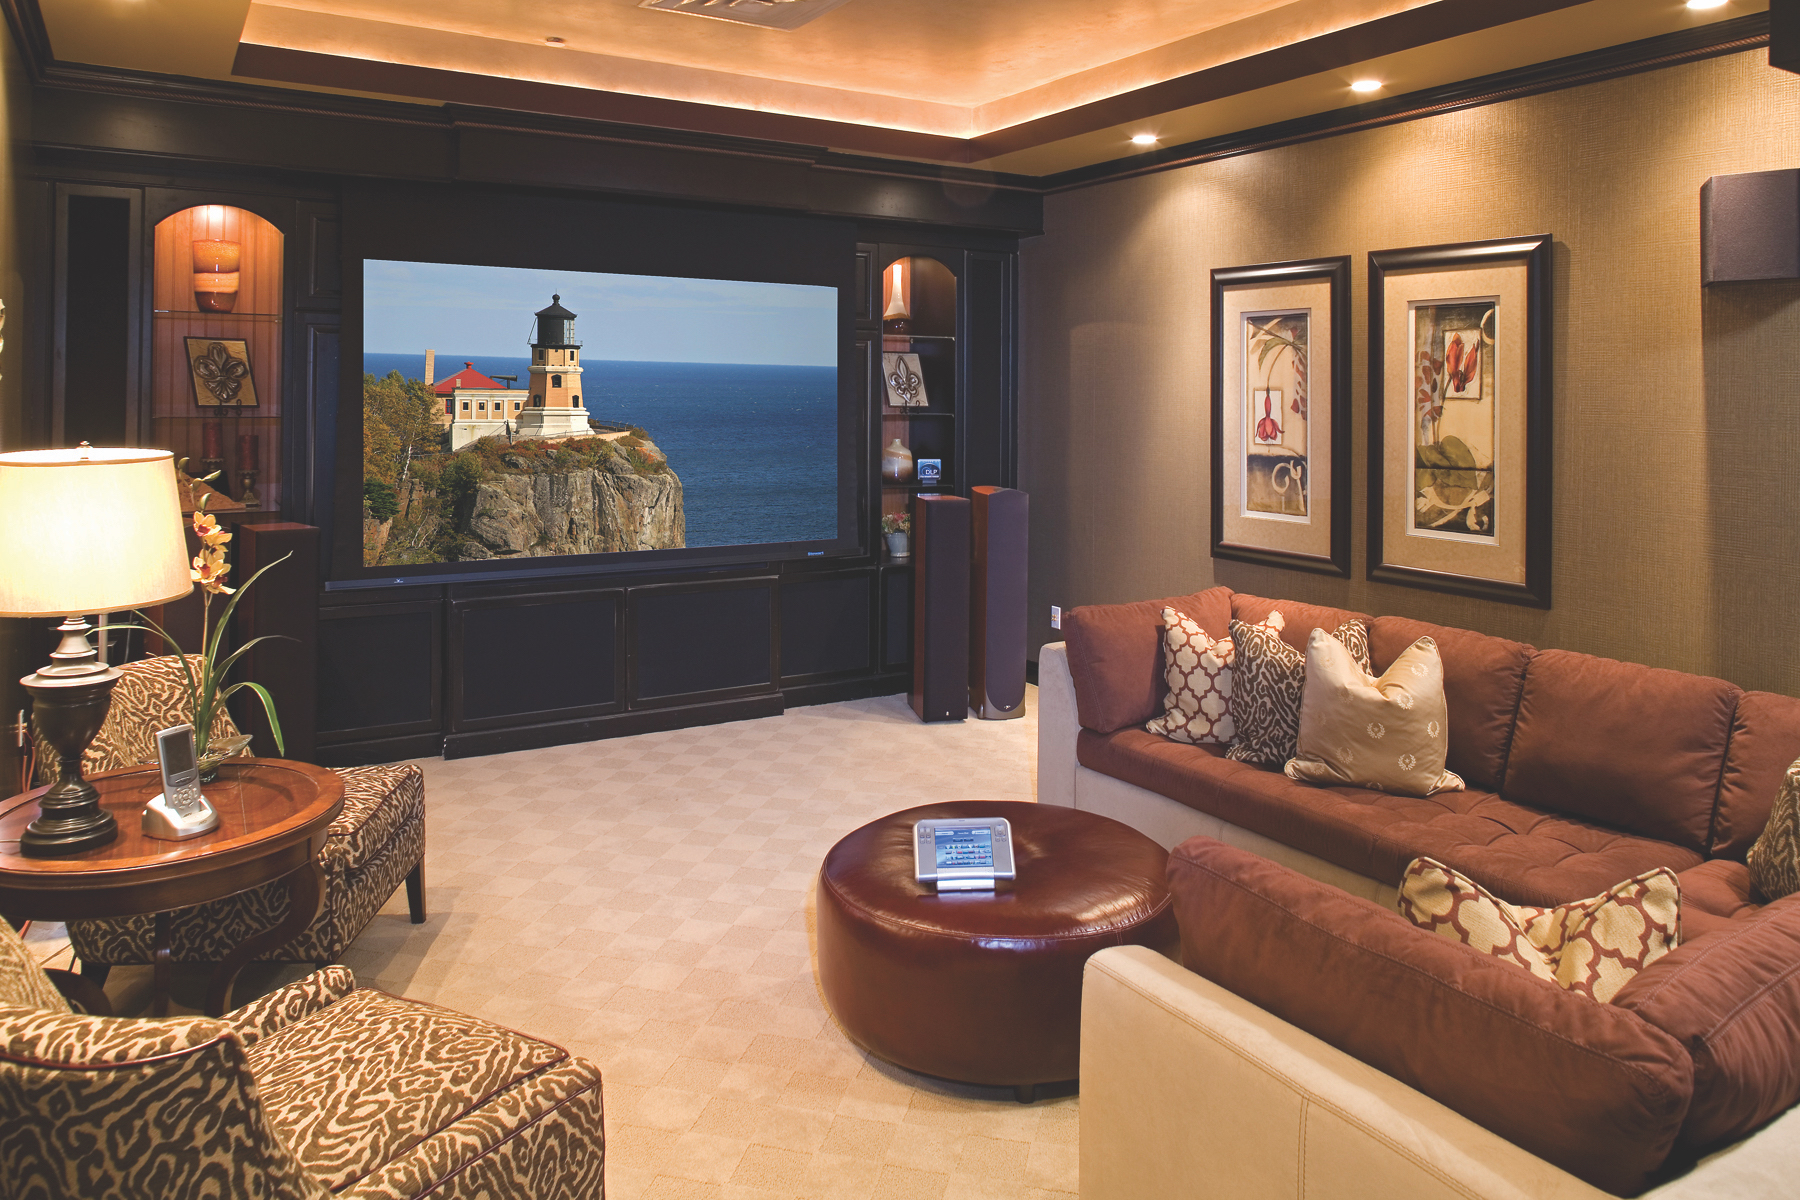 Don't Let Social Distancing Get You Down – Socialize in Your Home Theater